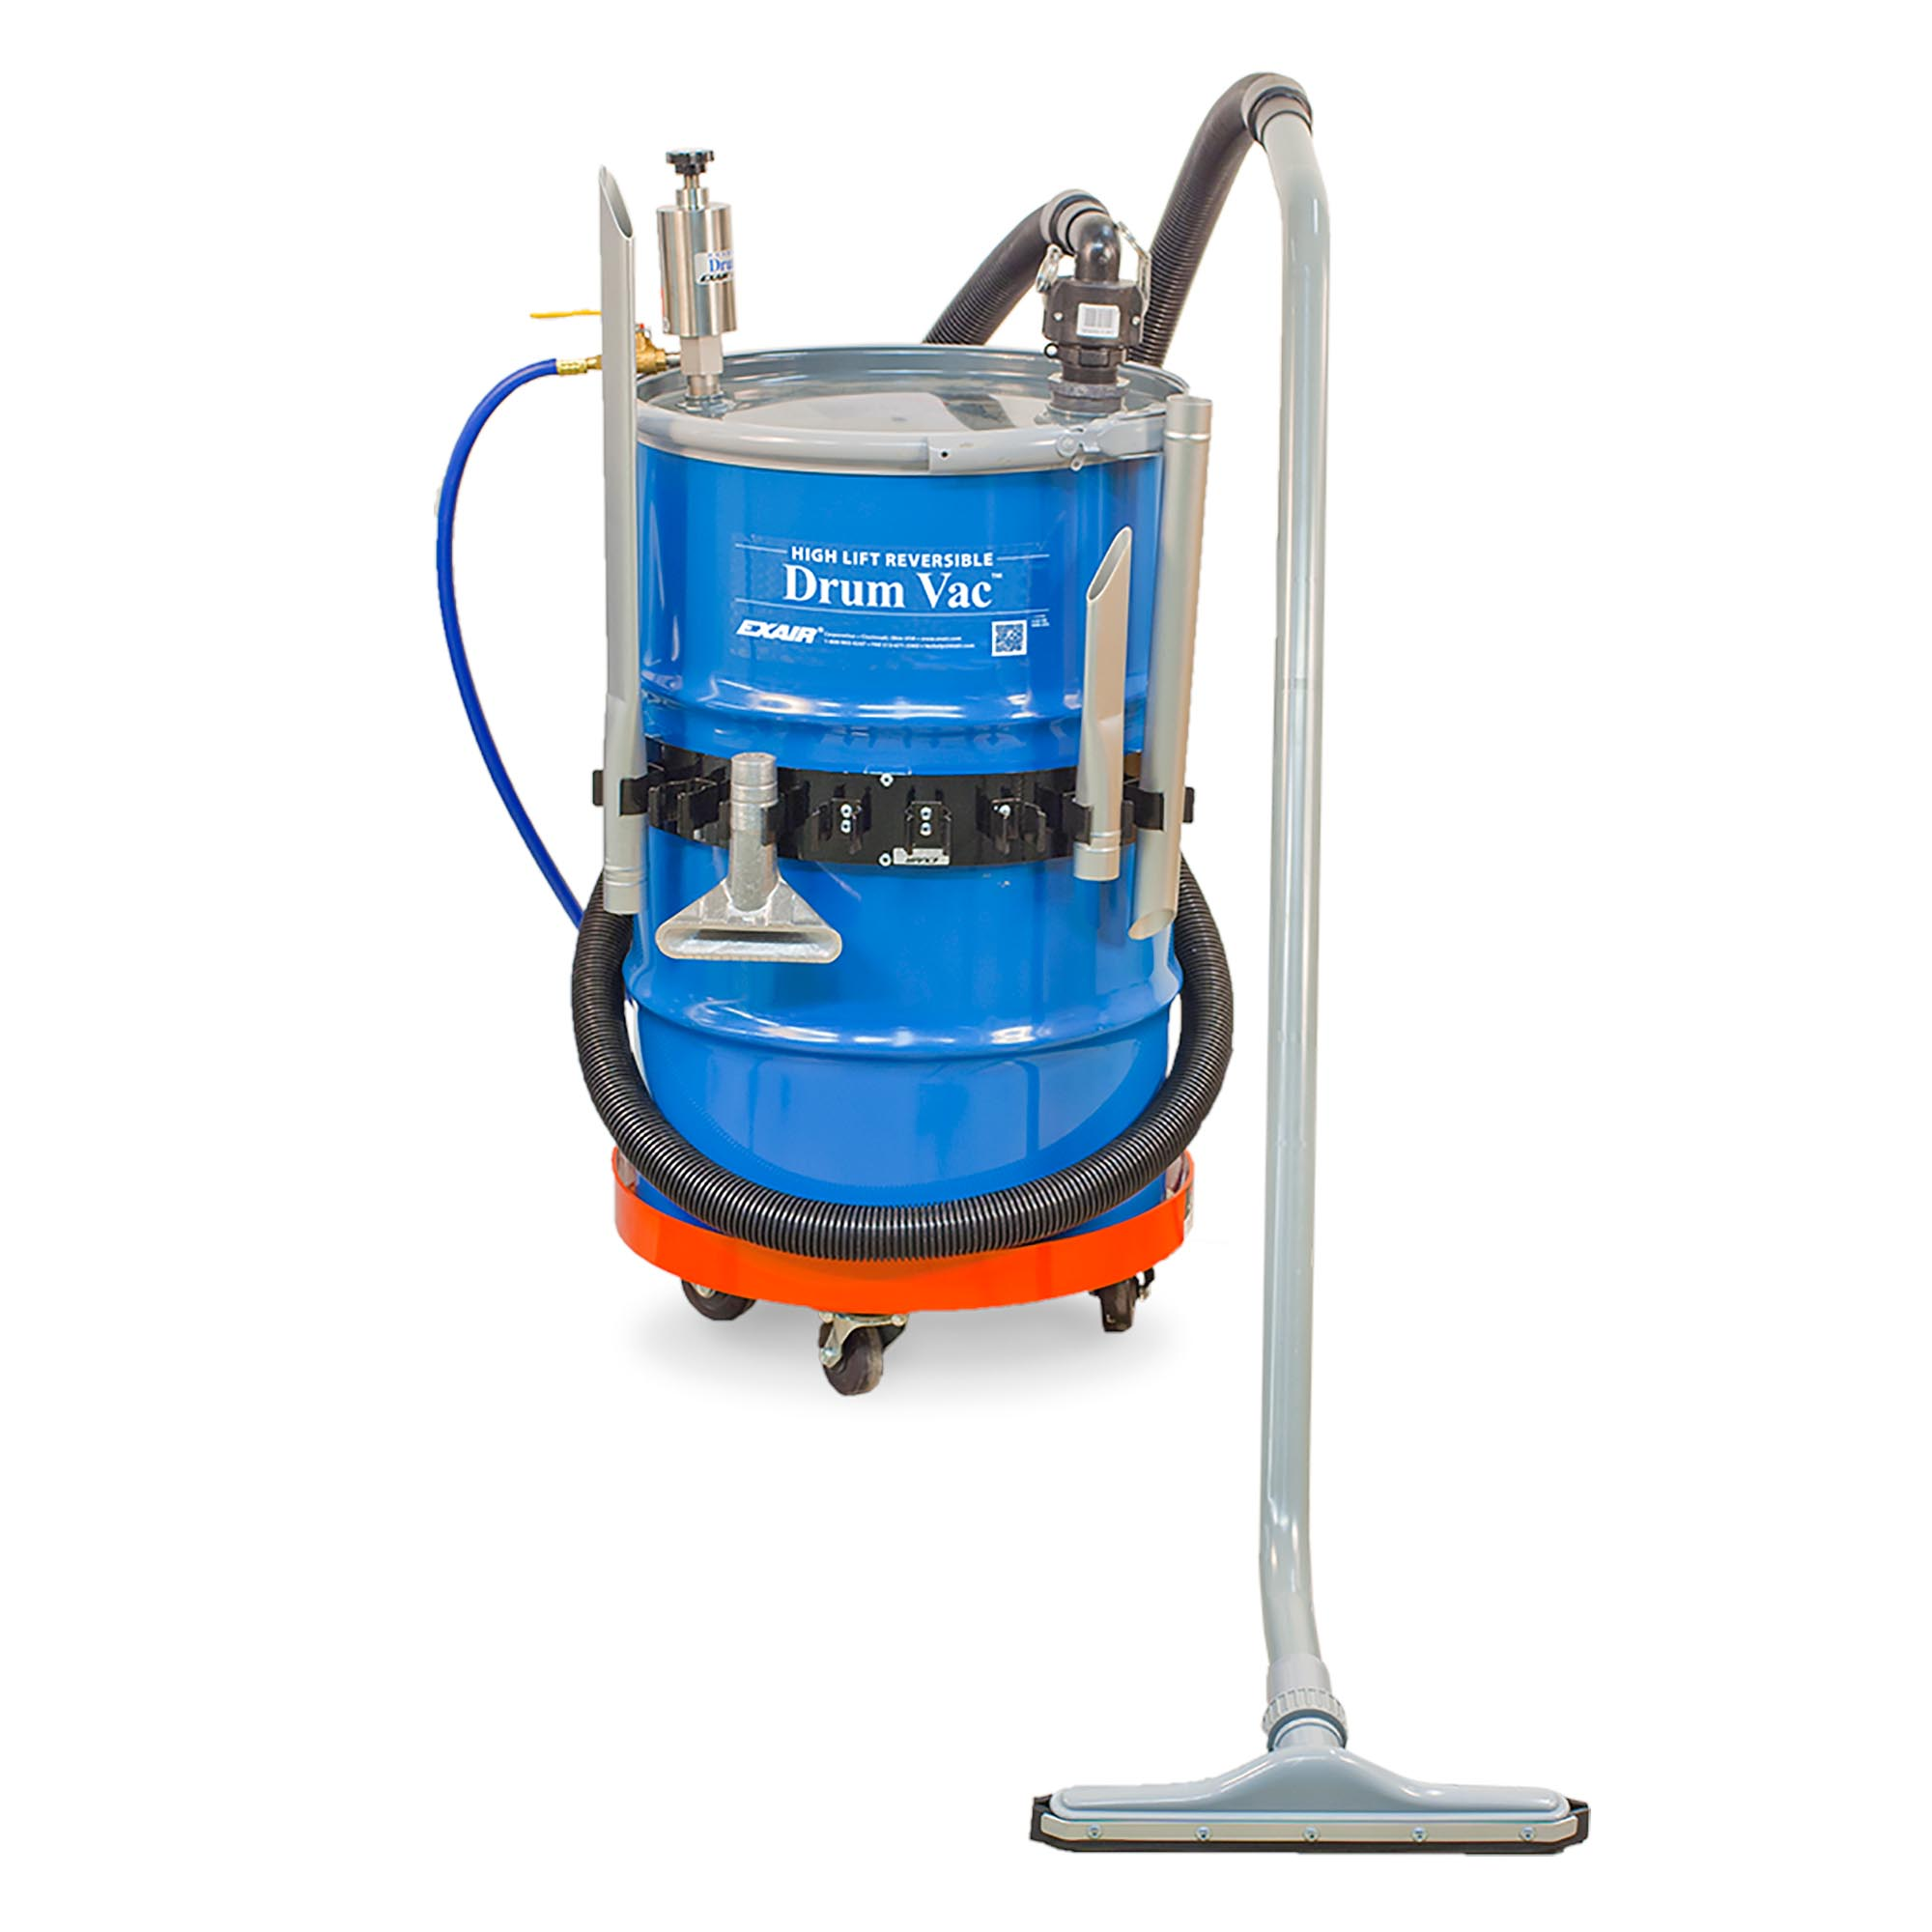 Model 6195-30 30 Gallon High Lift Reversible Drum Vac System